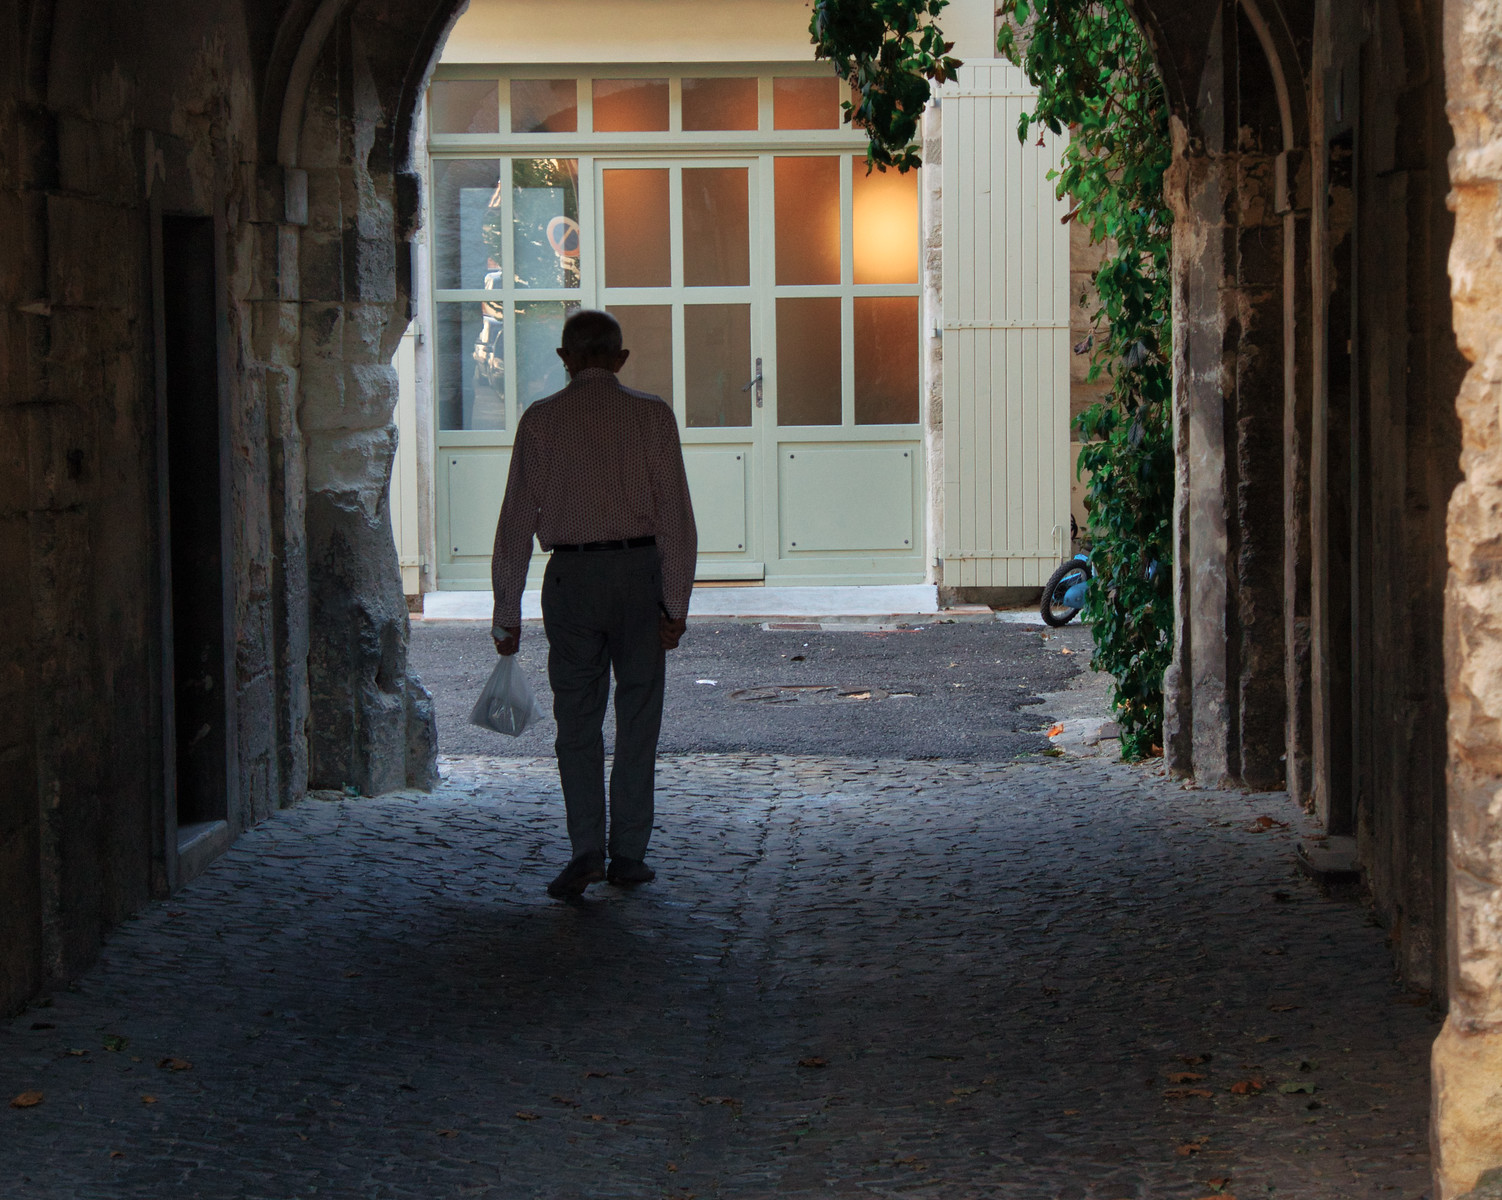 An elderly man walks home in Avignon France